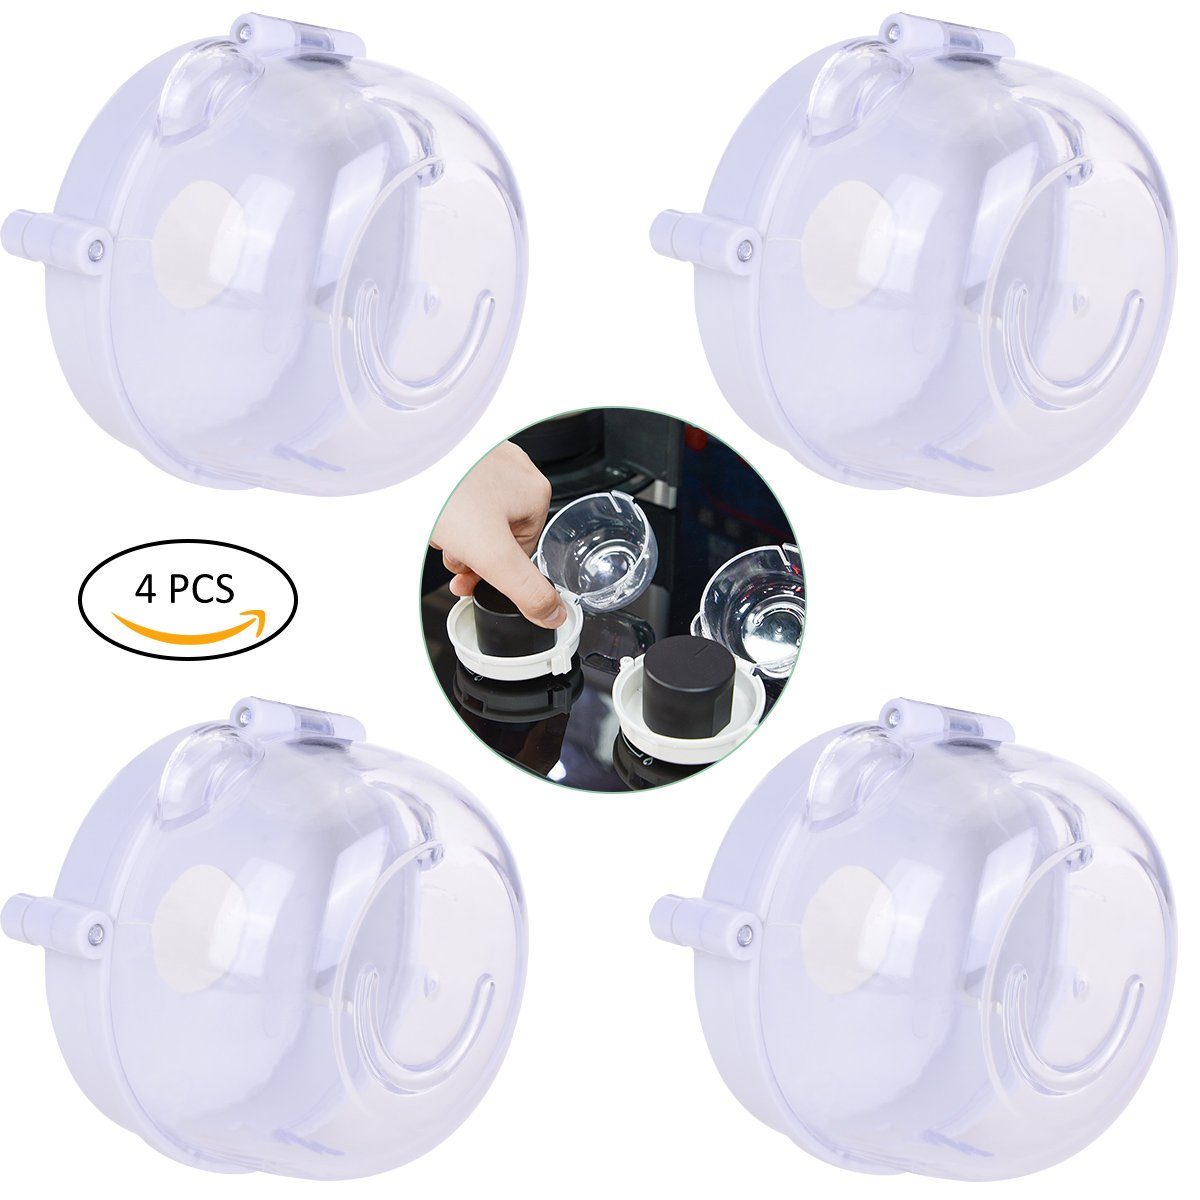 YoungRich 4Pcs Universal Kitchen Stove Knob Covers Protection Locks Easy Set-up Clear View Heat Resistant for Child Safety